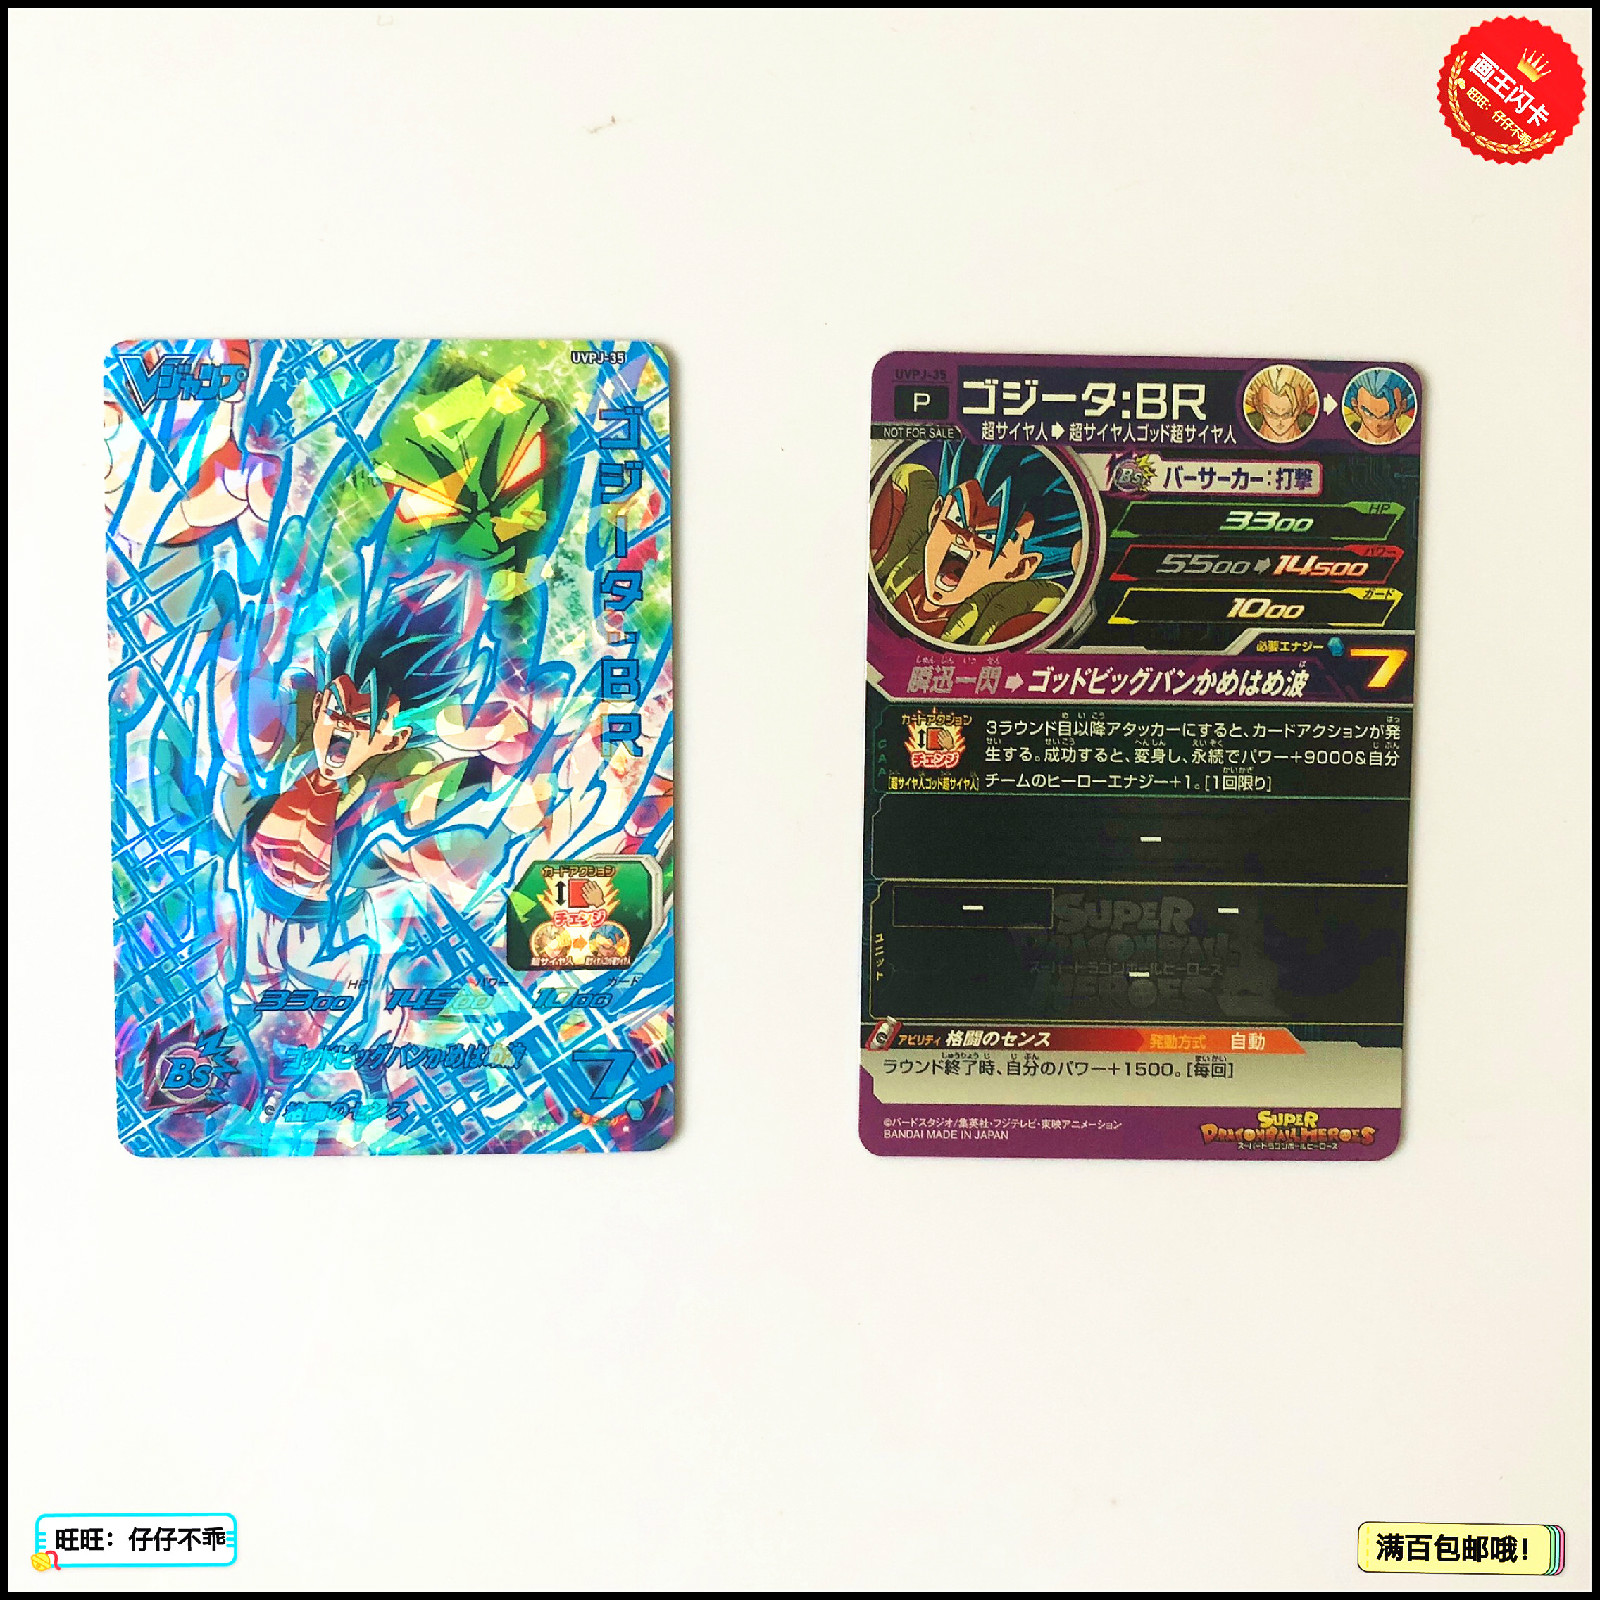 Japan Original Dragon Ball Hero Card UM8 UVPJ-35 Goku Toys Hobbies Collectibles Game Collection Anime Cards